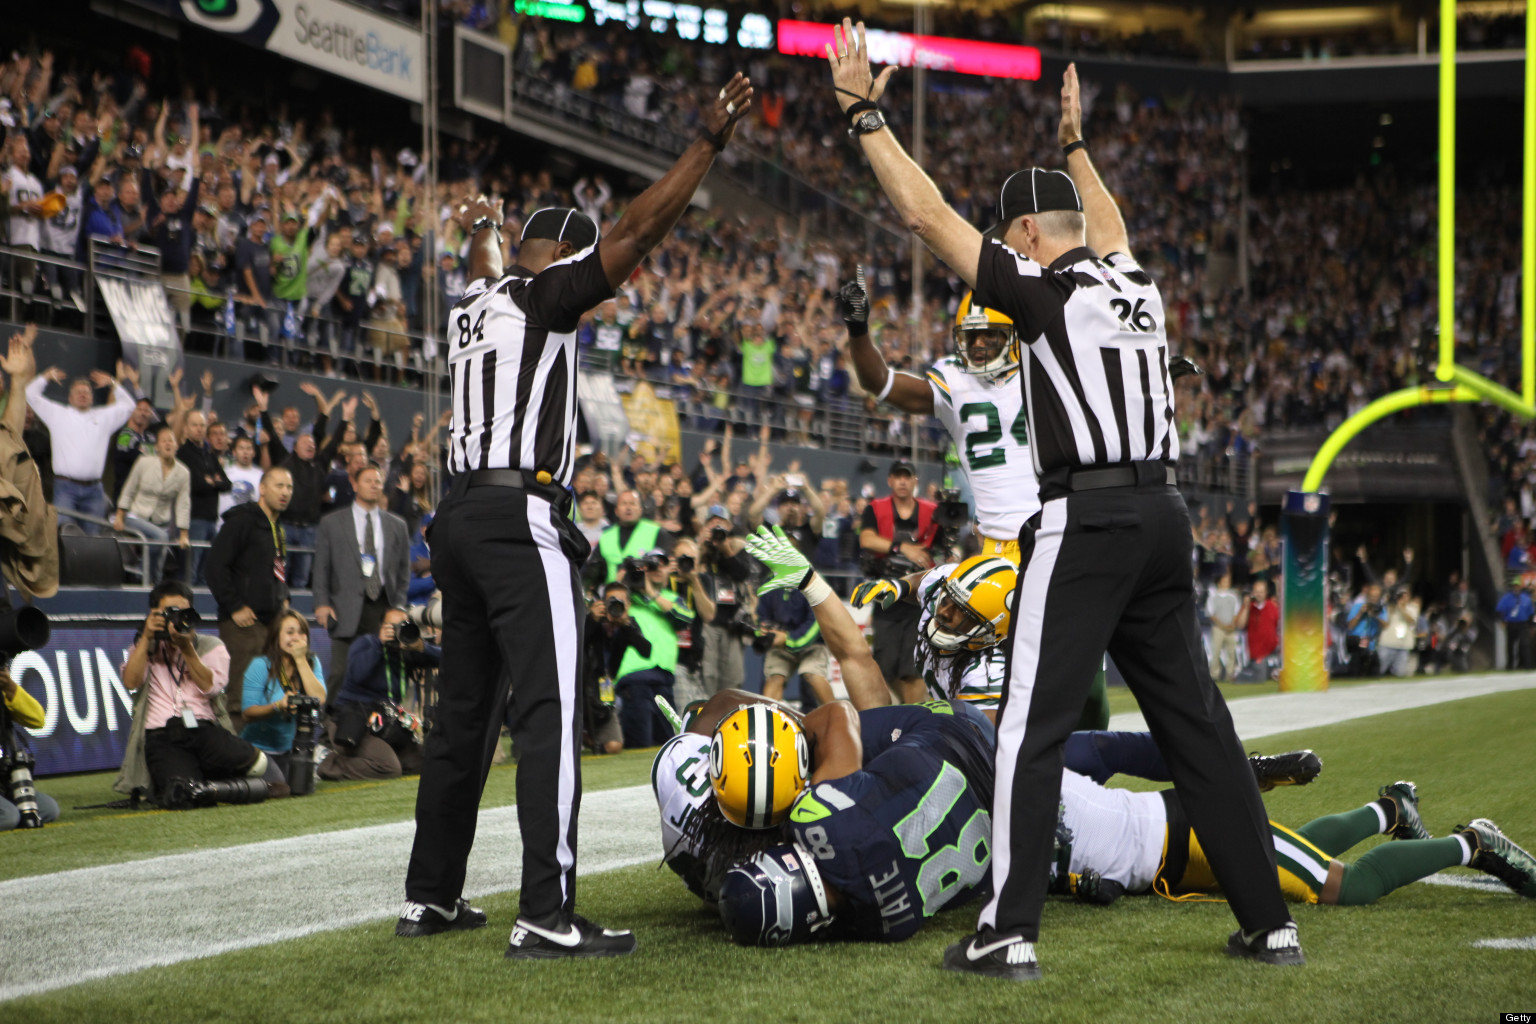 https://s-i.huffpost.com/gen/786596/images/o-SEAHAWKS-PACKERS-ENDING-NFL-REPLACEMENT-REFS-facebook.jpg